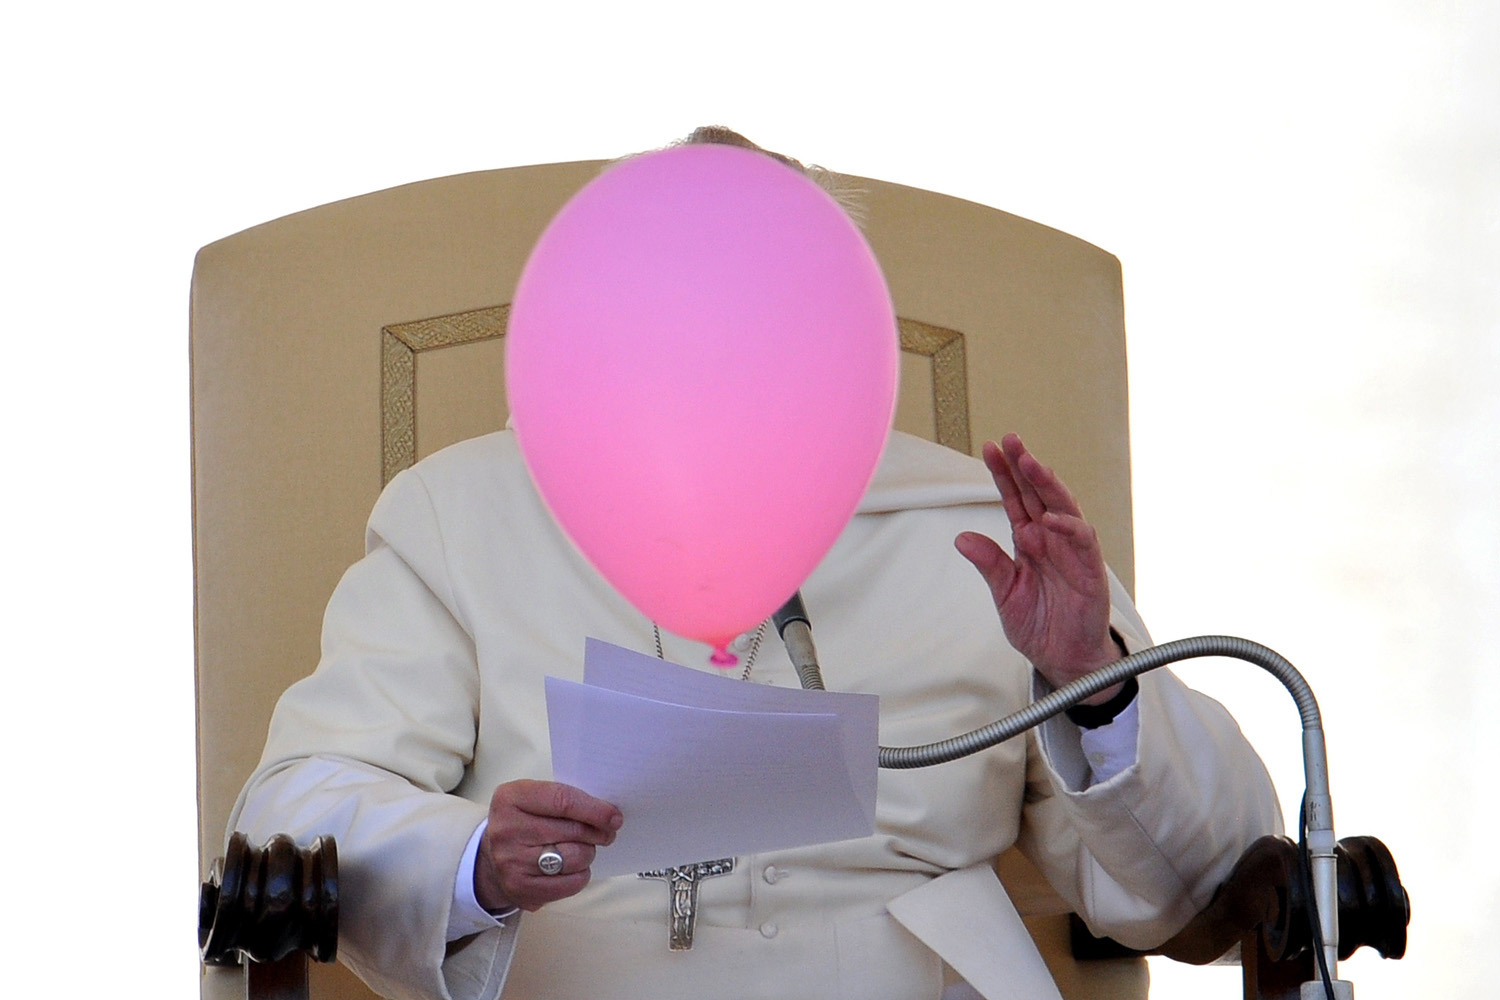 A balloon flies past Pope Francis during his general audience in St. Peter's Square at the Vatican on May 14, 2014.